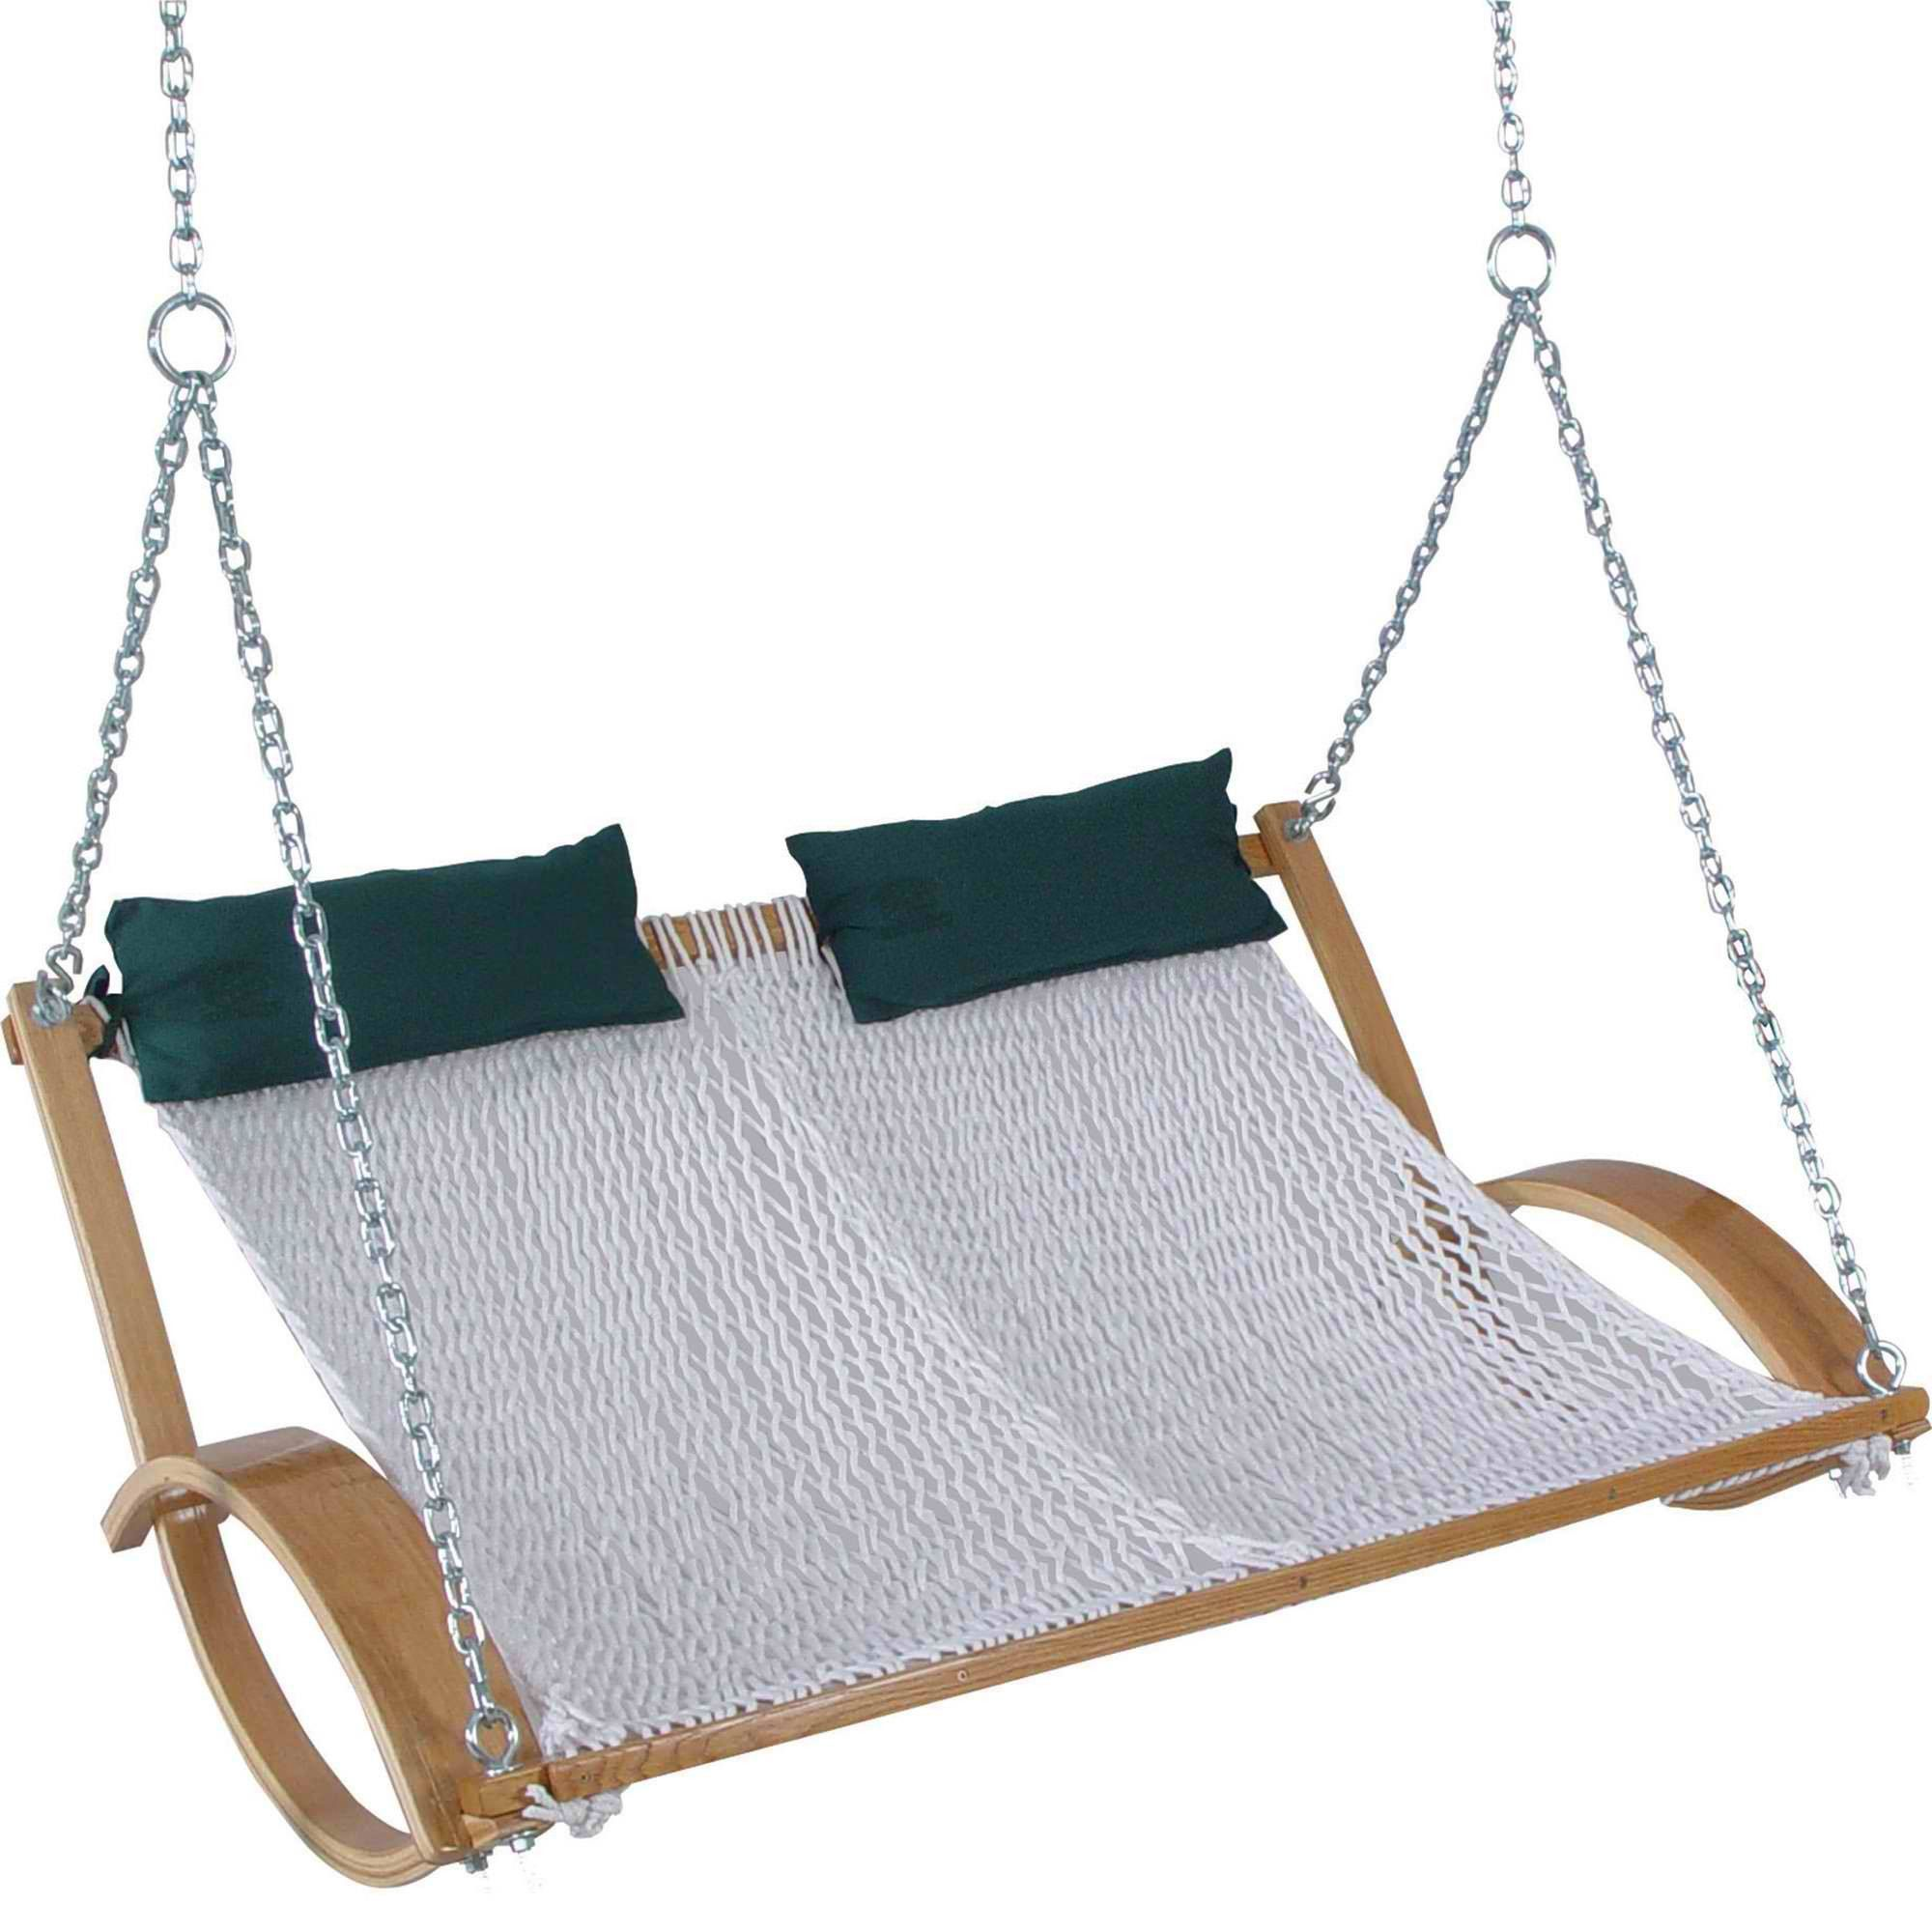 hanging porch gr home eno lounger chair gallery arc canopy double chaise hammock swing air best stand decoration ebay